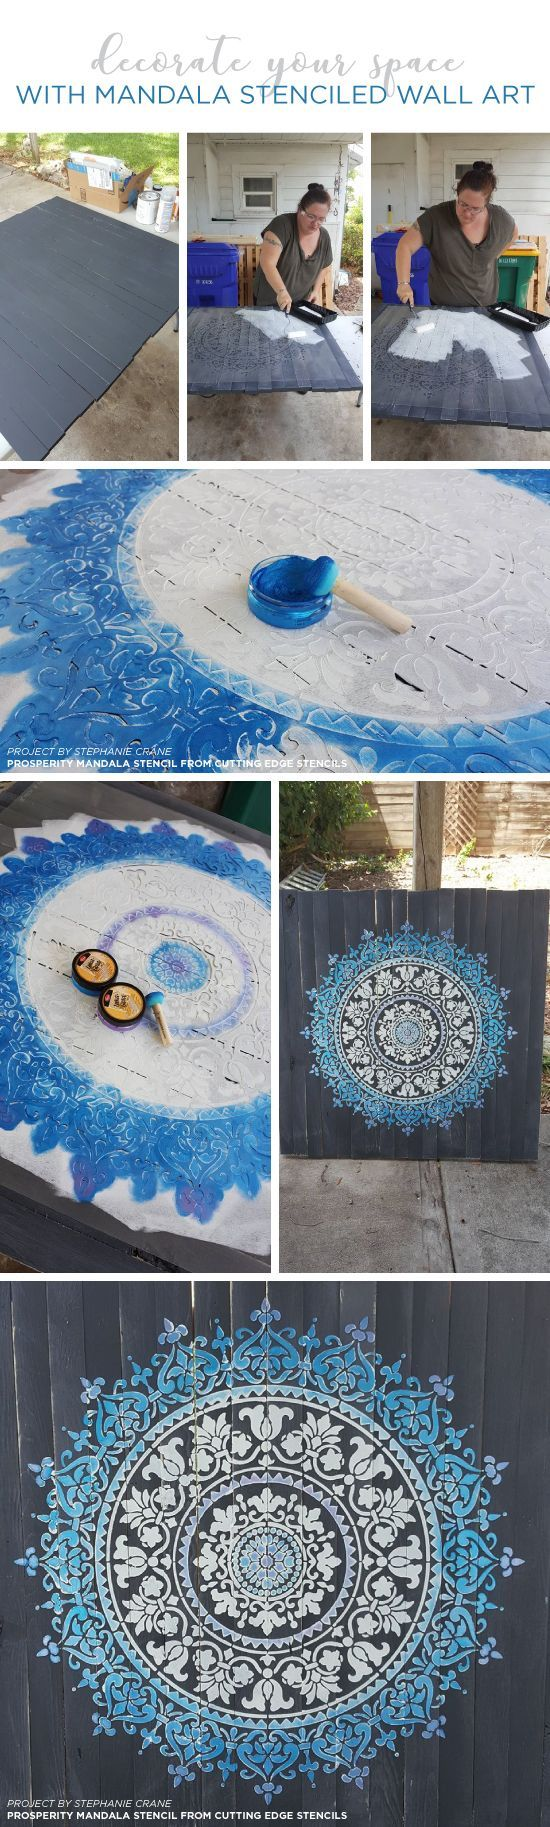 25 unique mandala stencils ideas on pinterest cutting edge cutting edge stencils shares how to stencil diy reclaimed wood wall art using a mandala stencil amipublicfo Images